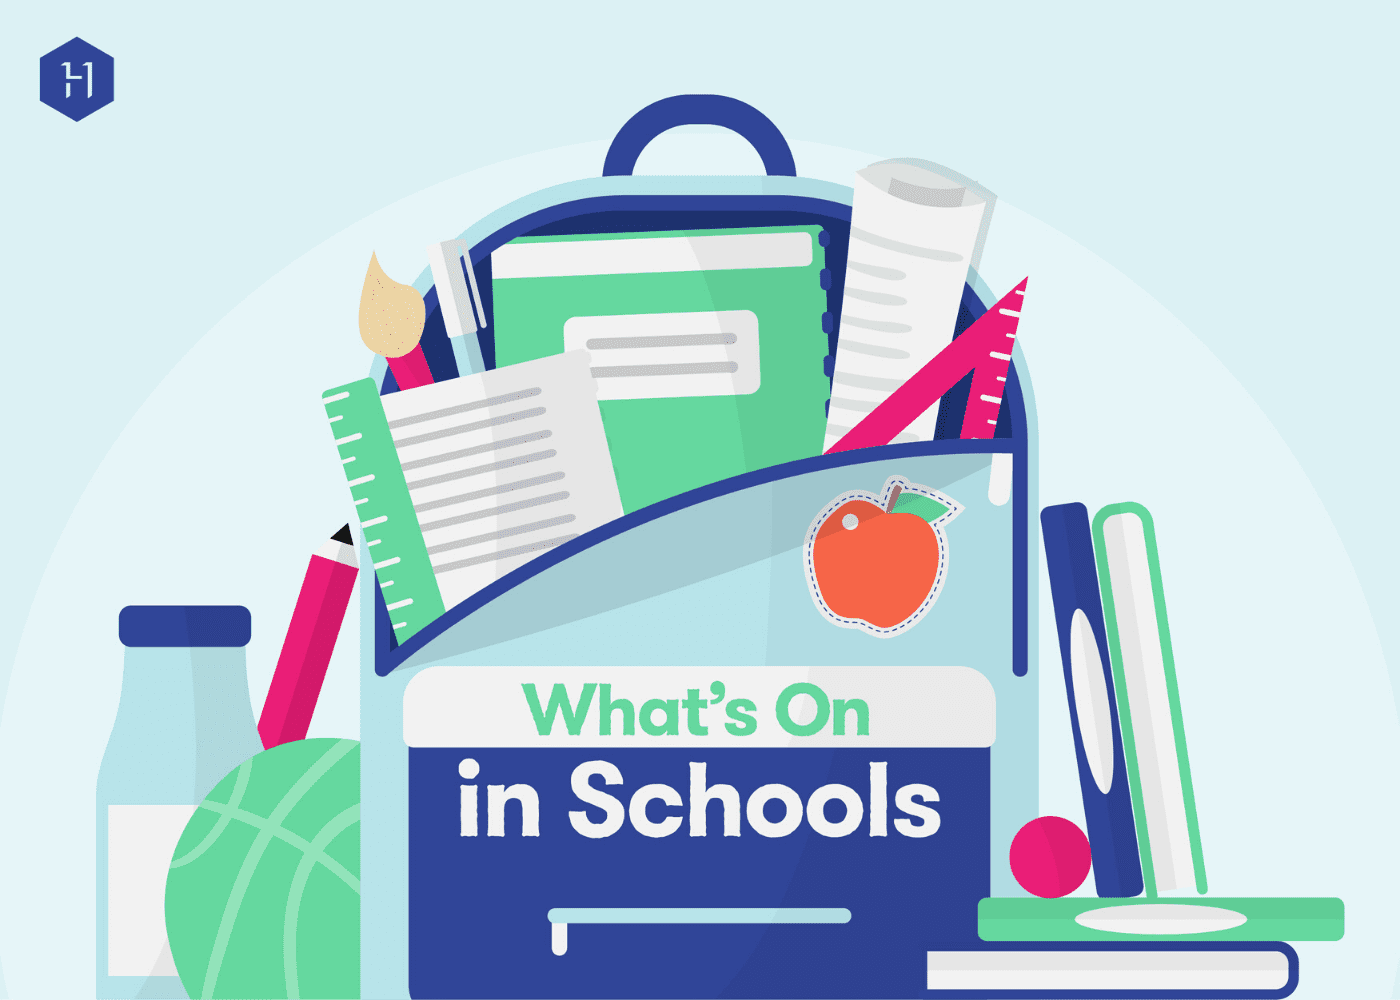 What's on in schools April 2020: Easter camps, festivals and open houses